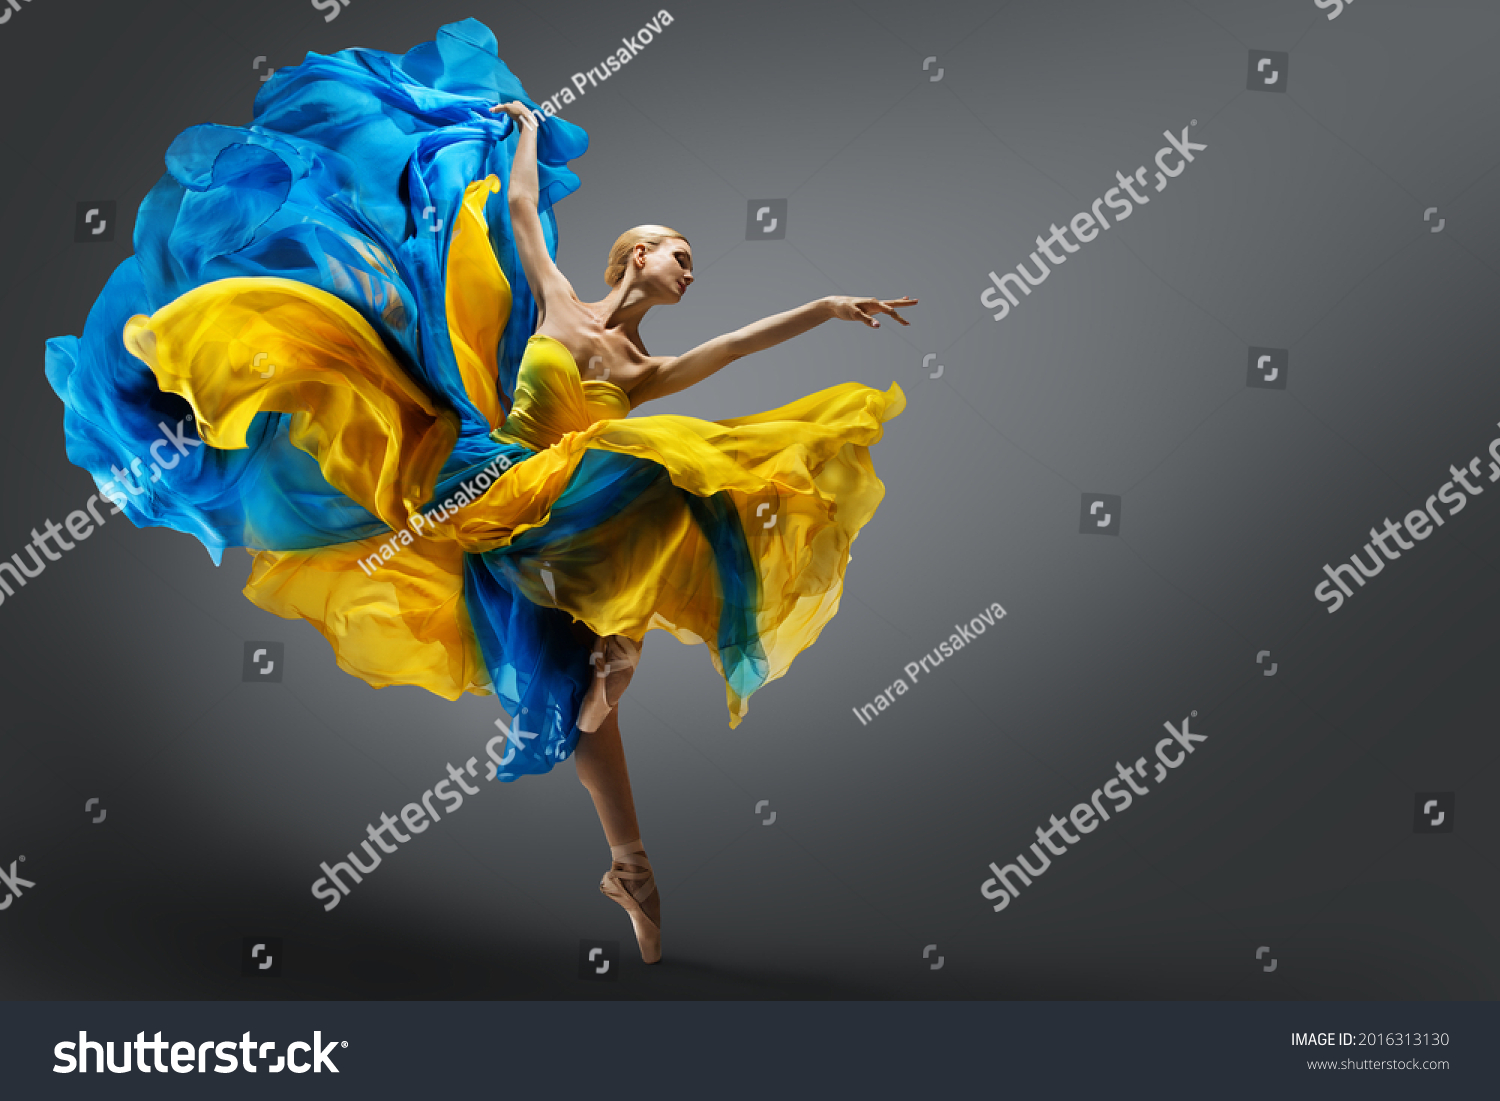 Beautiful Woman Ballet Dancer Jumping in Air in Colorful Fluttering Dress. Graceful Ballerina Dancing in Yellow Blue Gown over Gray Studio Background #2016313130